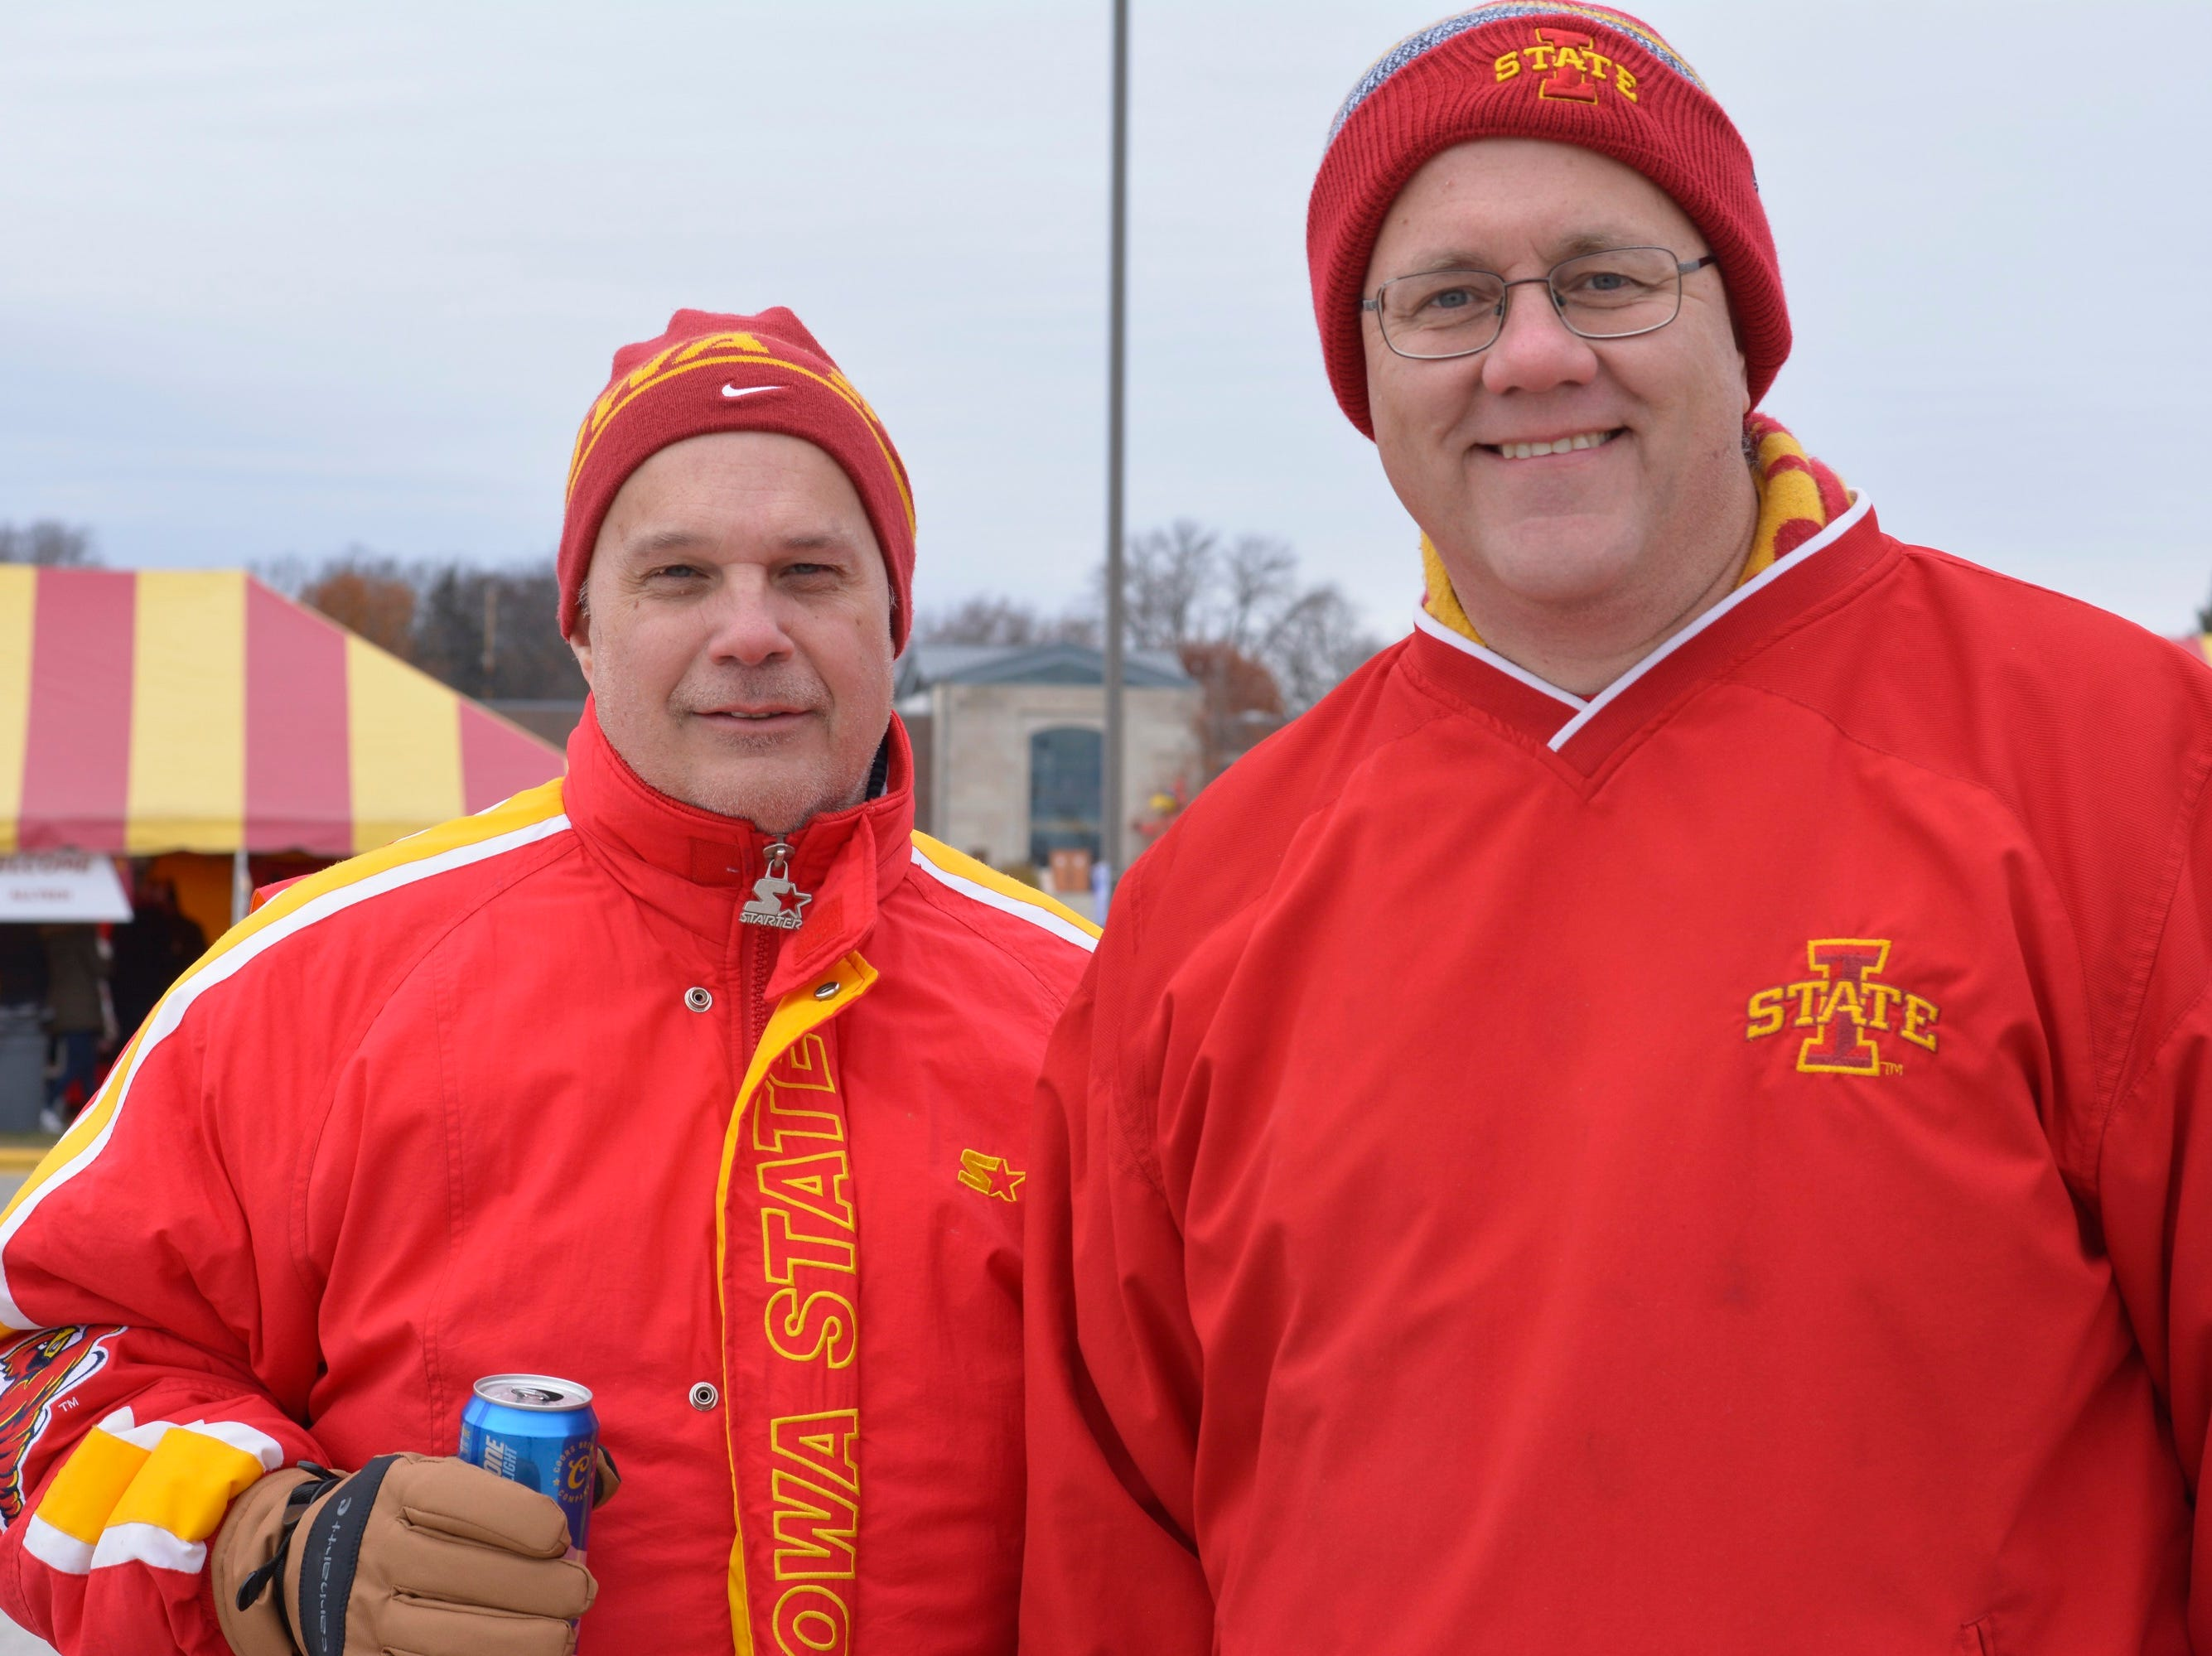 Dean Uhlenberg and Chris Brown tailgating before the Iowa State played Baylor in Ames on Nov. 10.